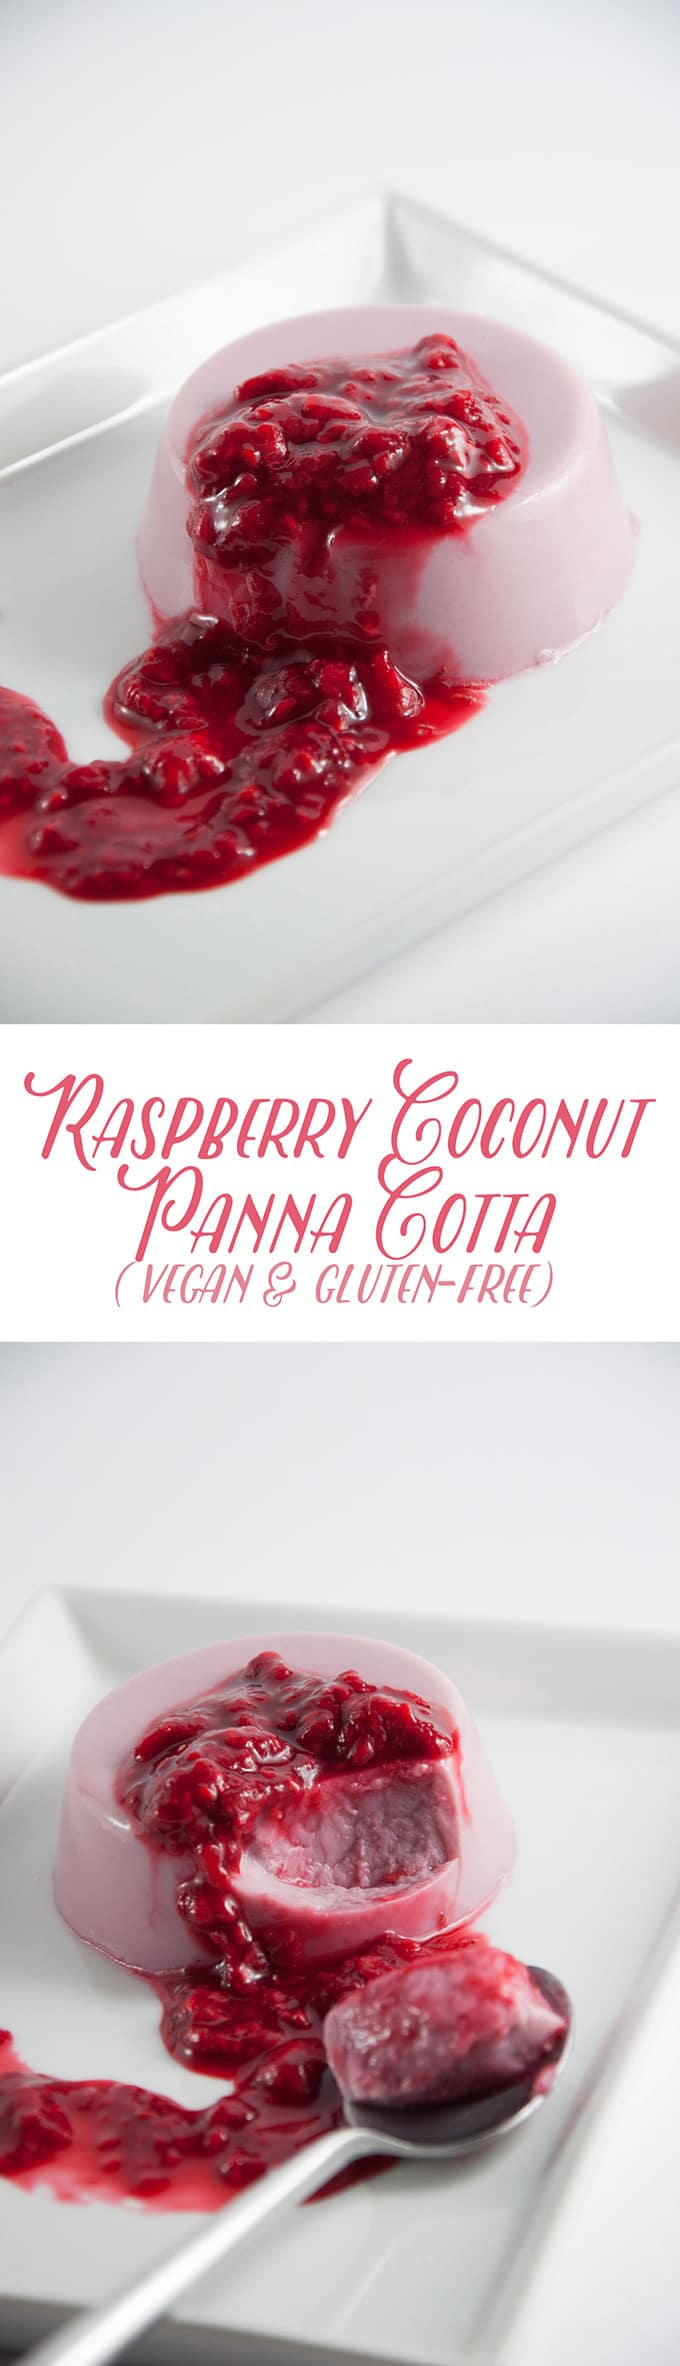 Vegan Raspberry Coconut Panna Cotta | ElephantasticVegan.com